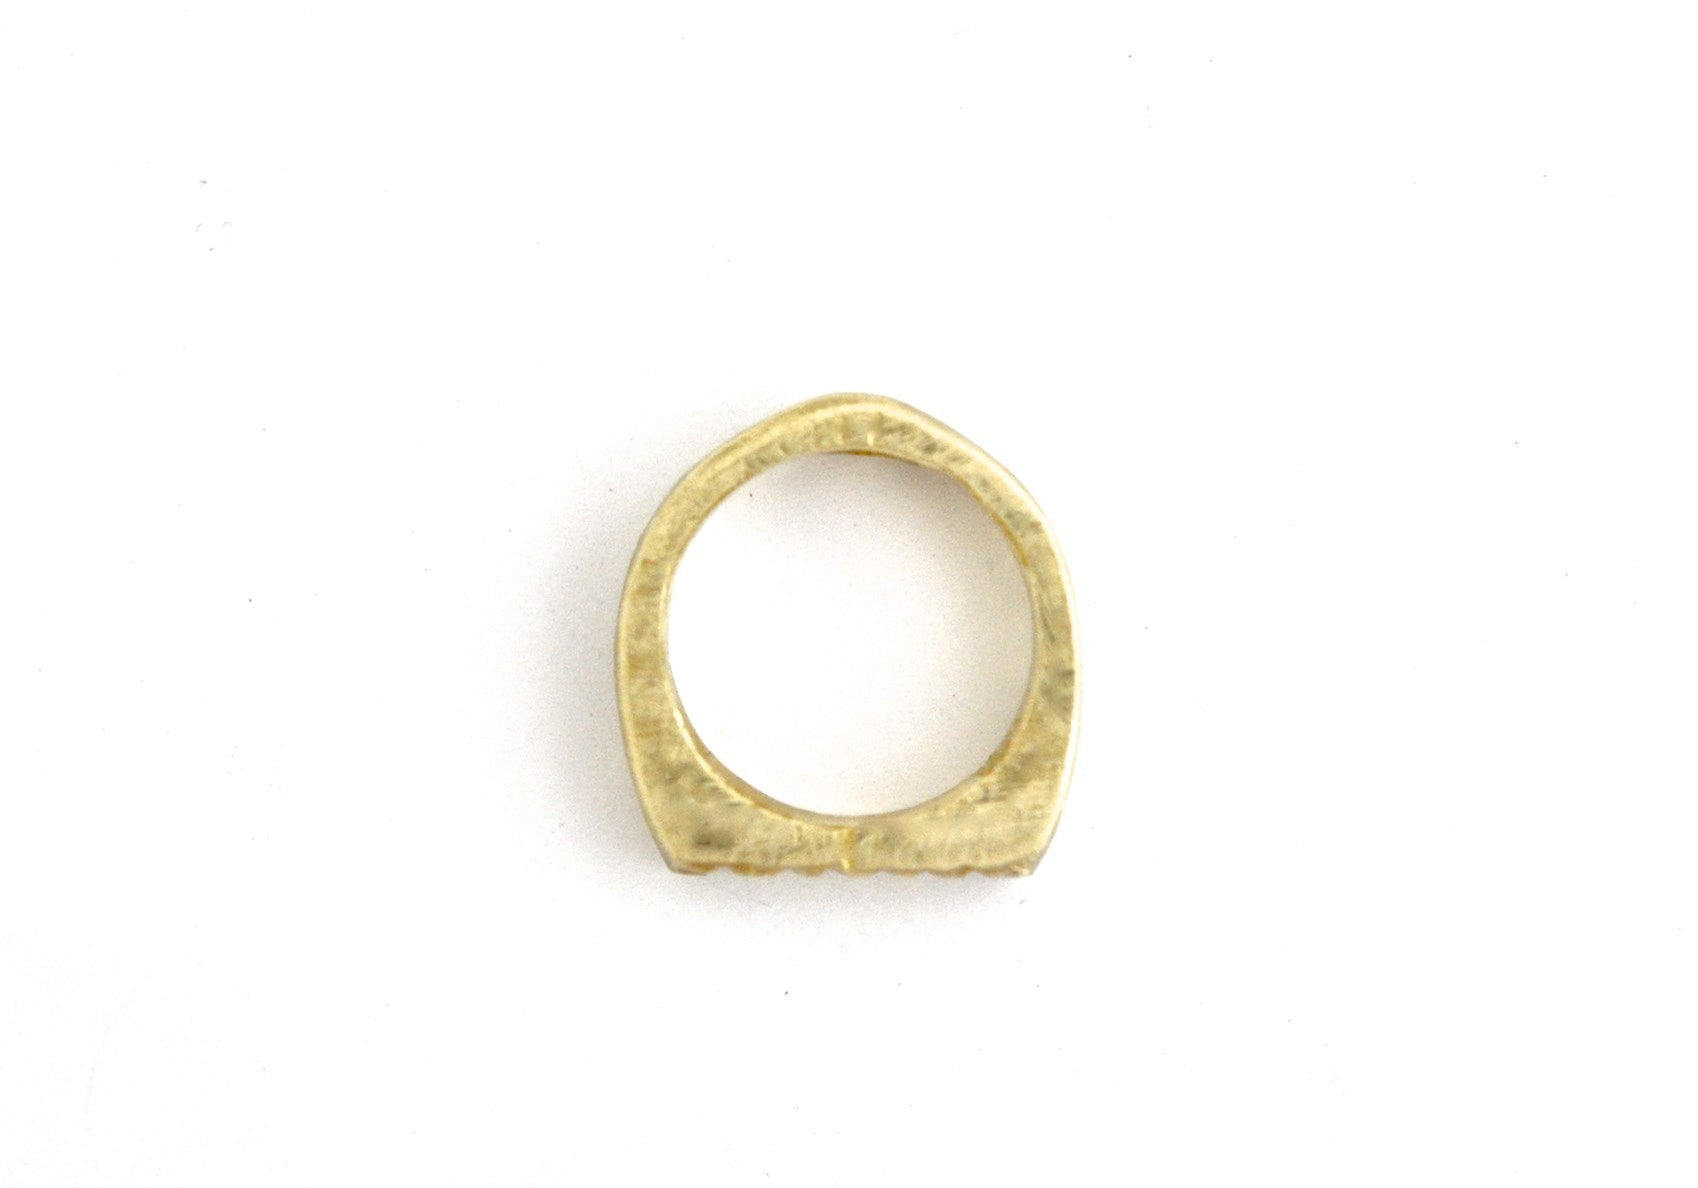 ring / signet ring CROSS HATCH